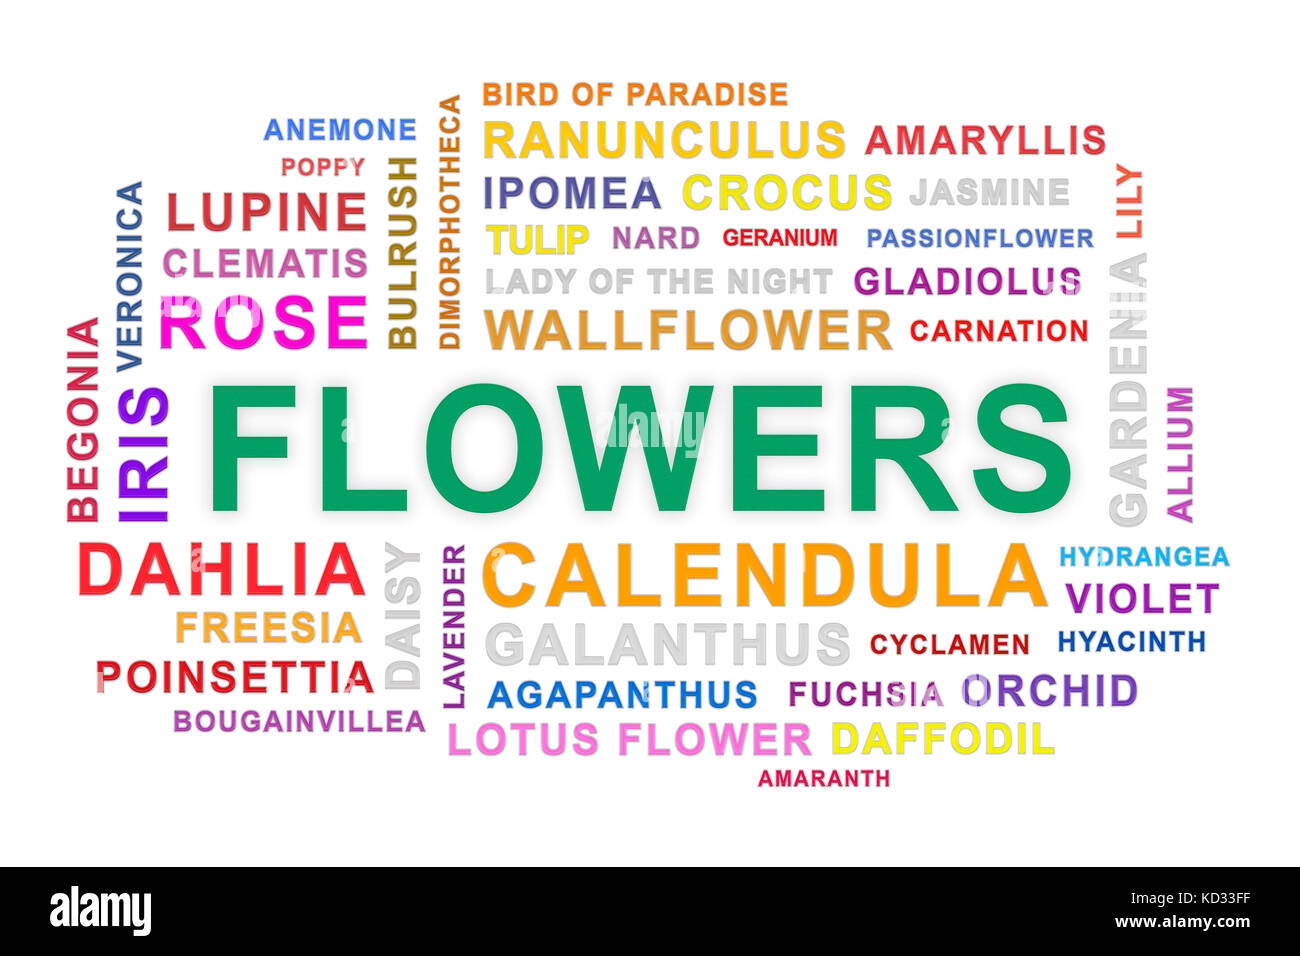 Flowers word cloud on white background. - Stock Image